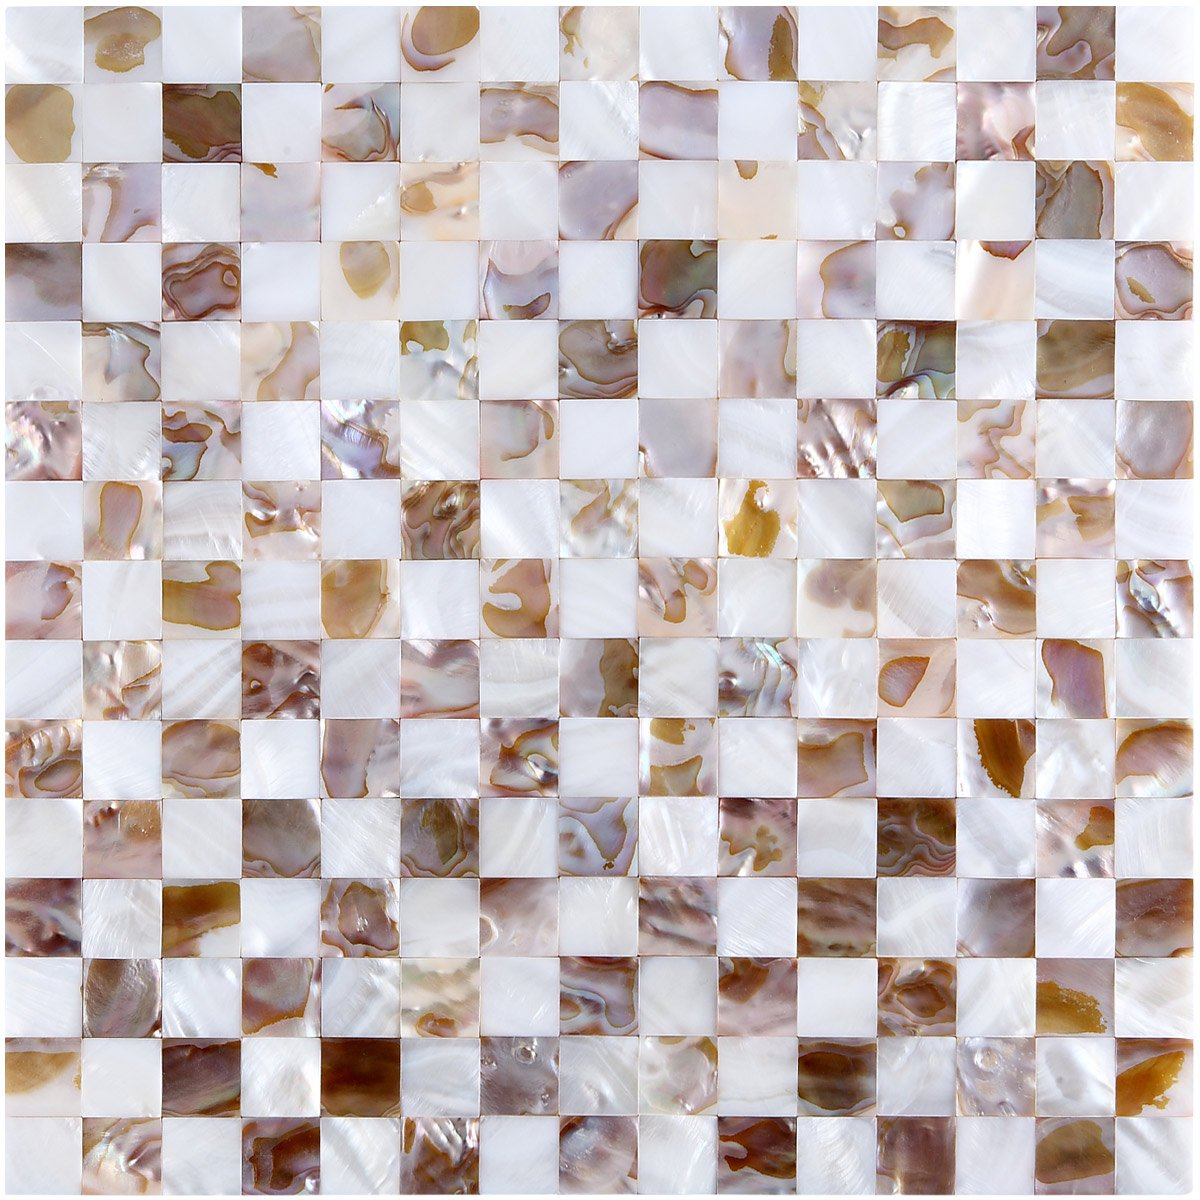 Art3d Peel and Stick Tile Mother of Pearl Shell Mosaic Backsplashes for Kitchen, 12